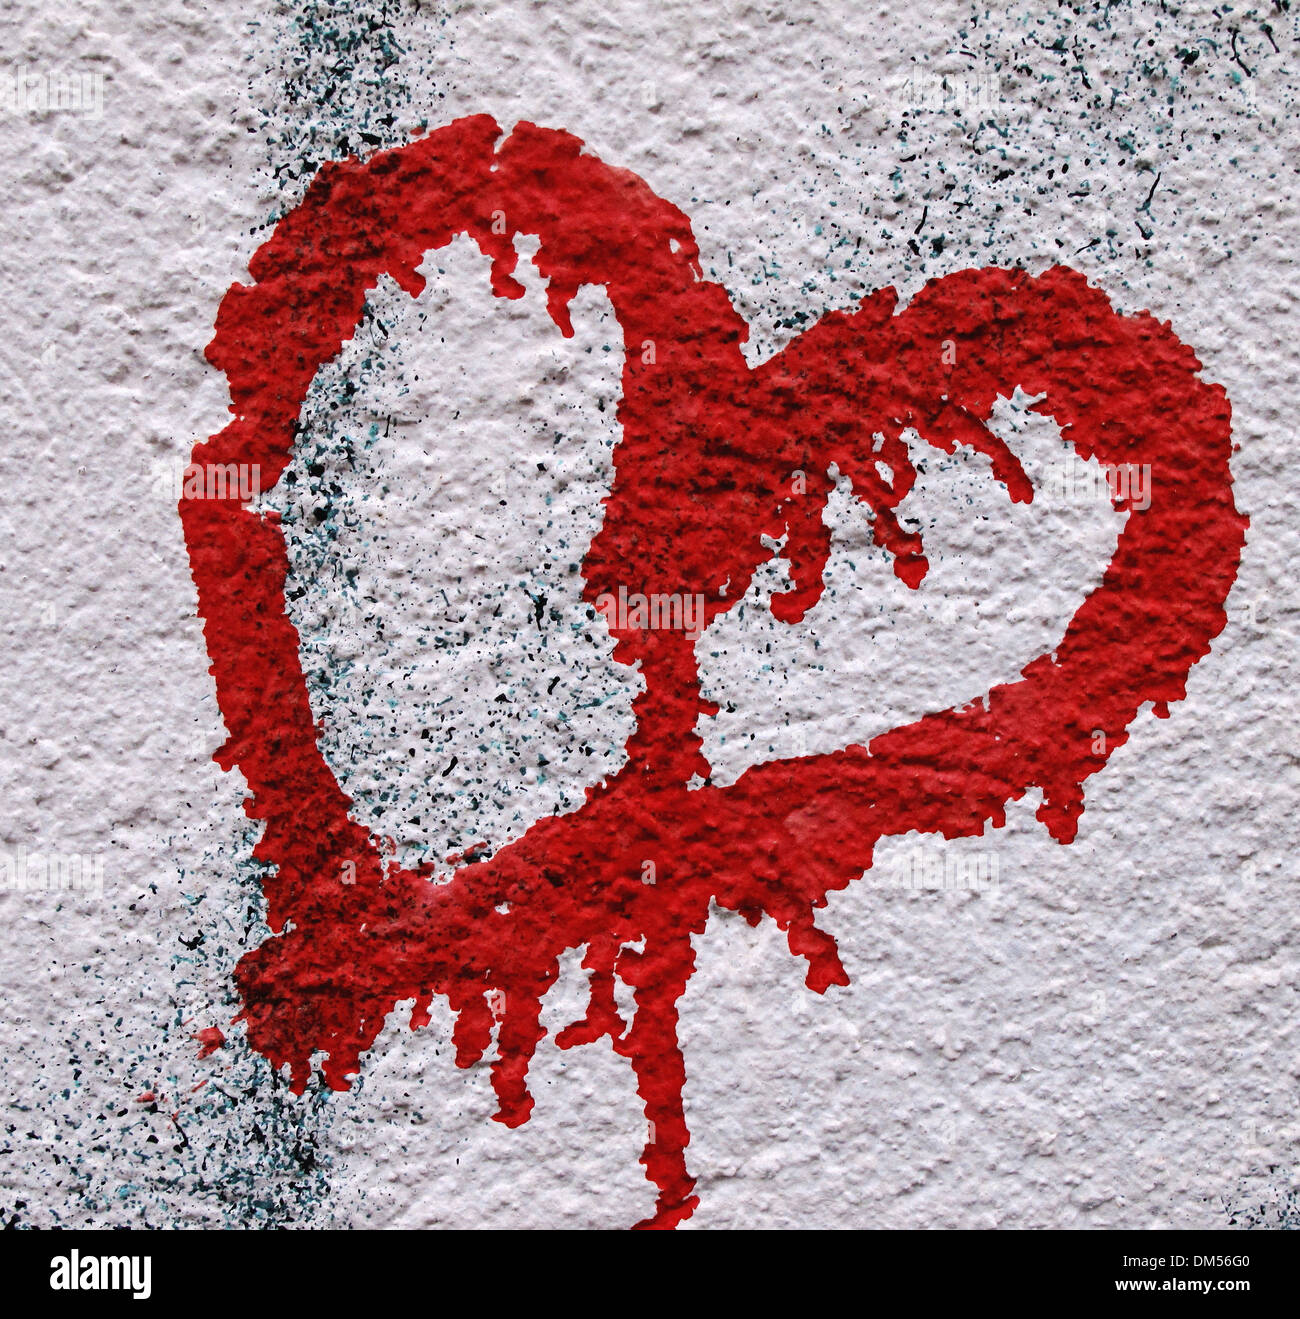 More poorly, concrete, wall, heart, spray, heart, red, love, symbol, mural painting - Stock Image